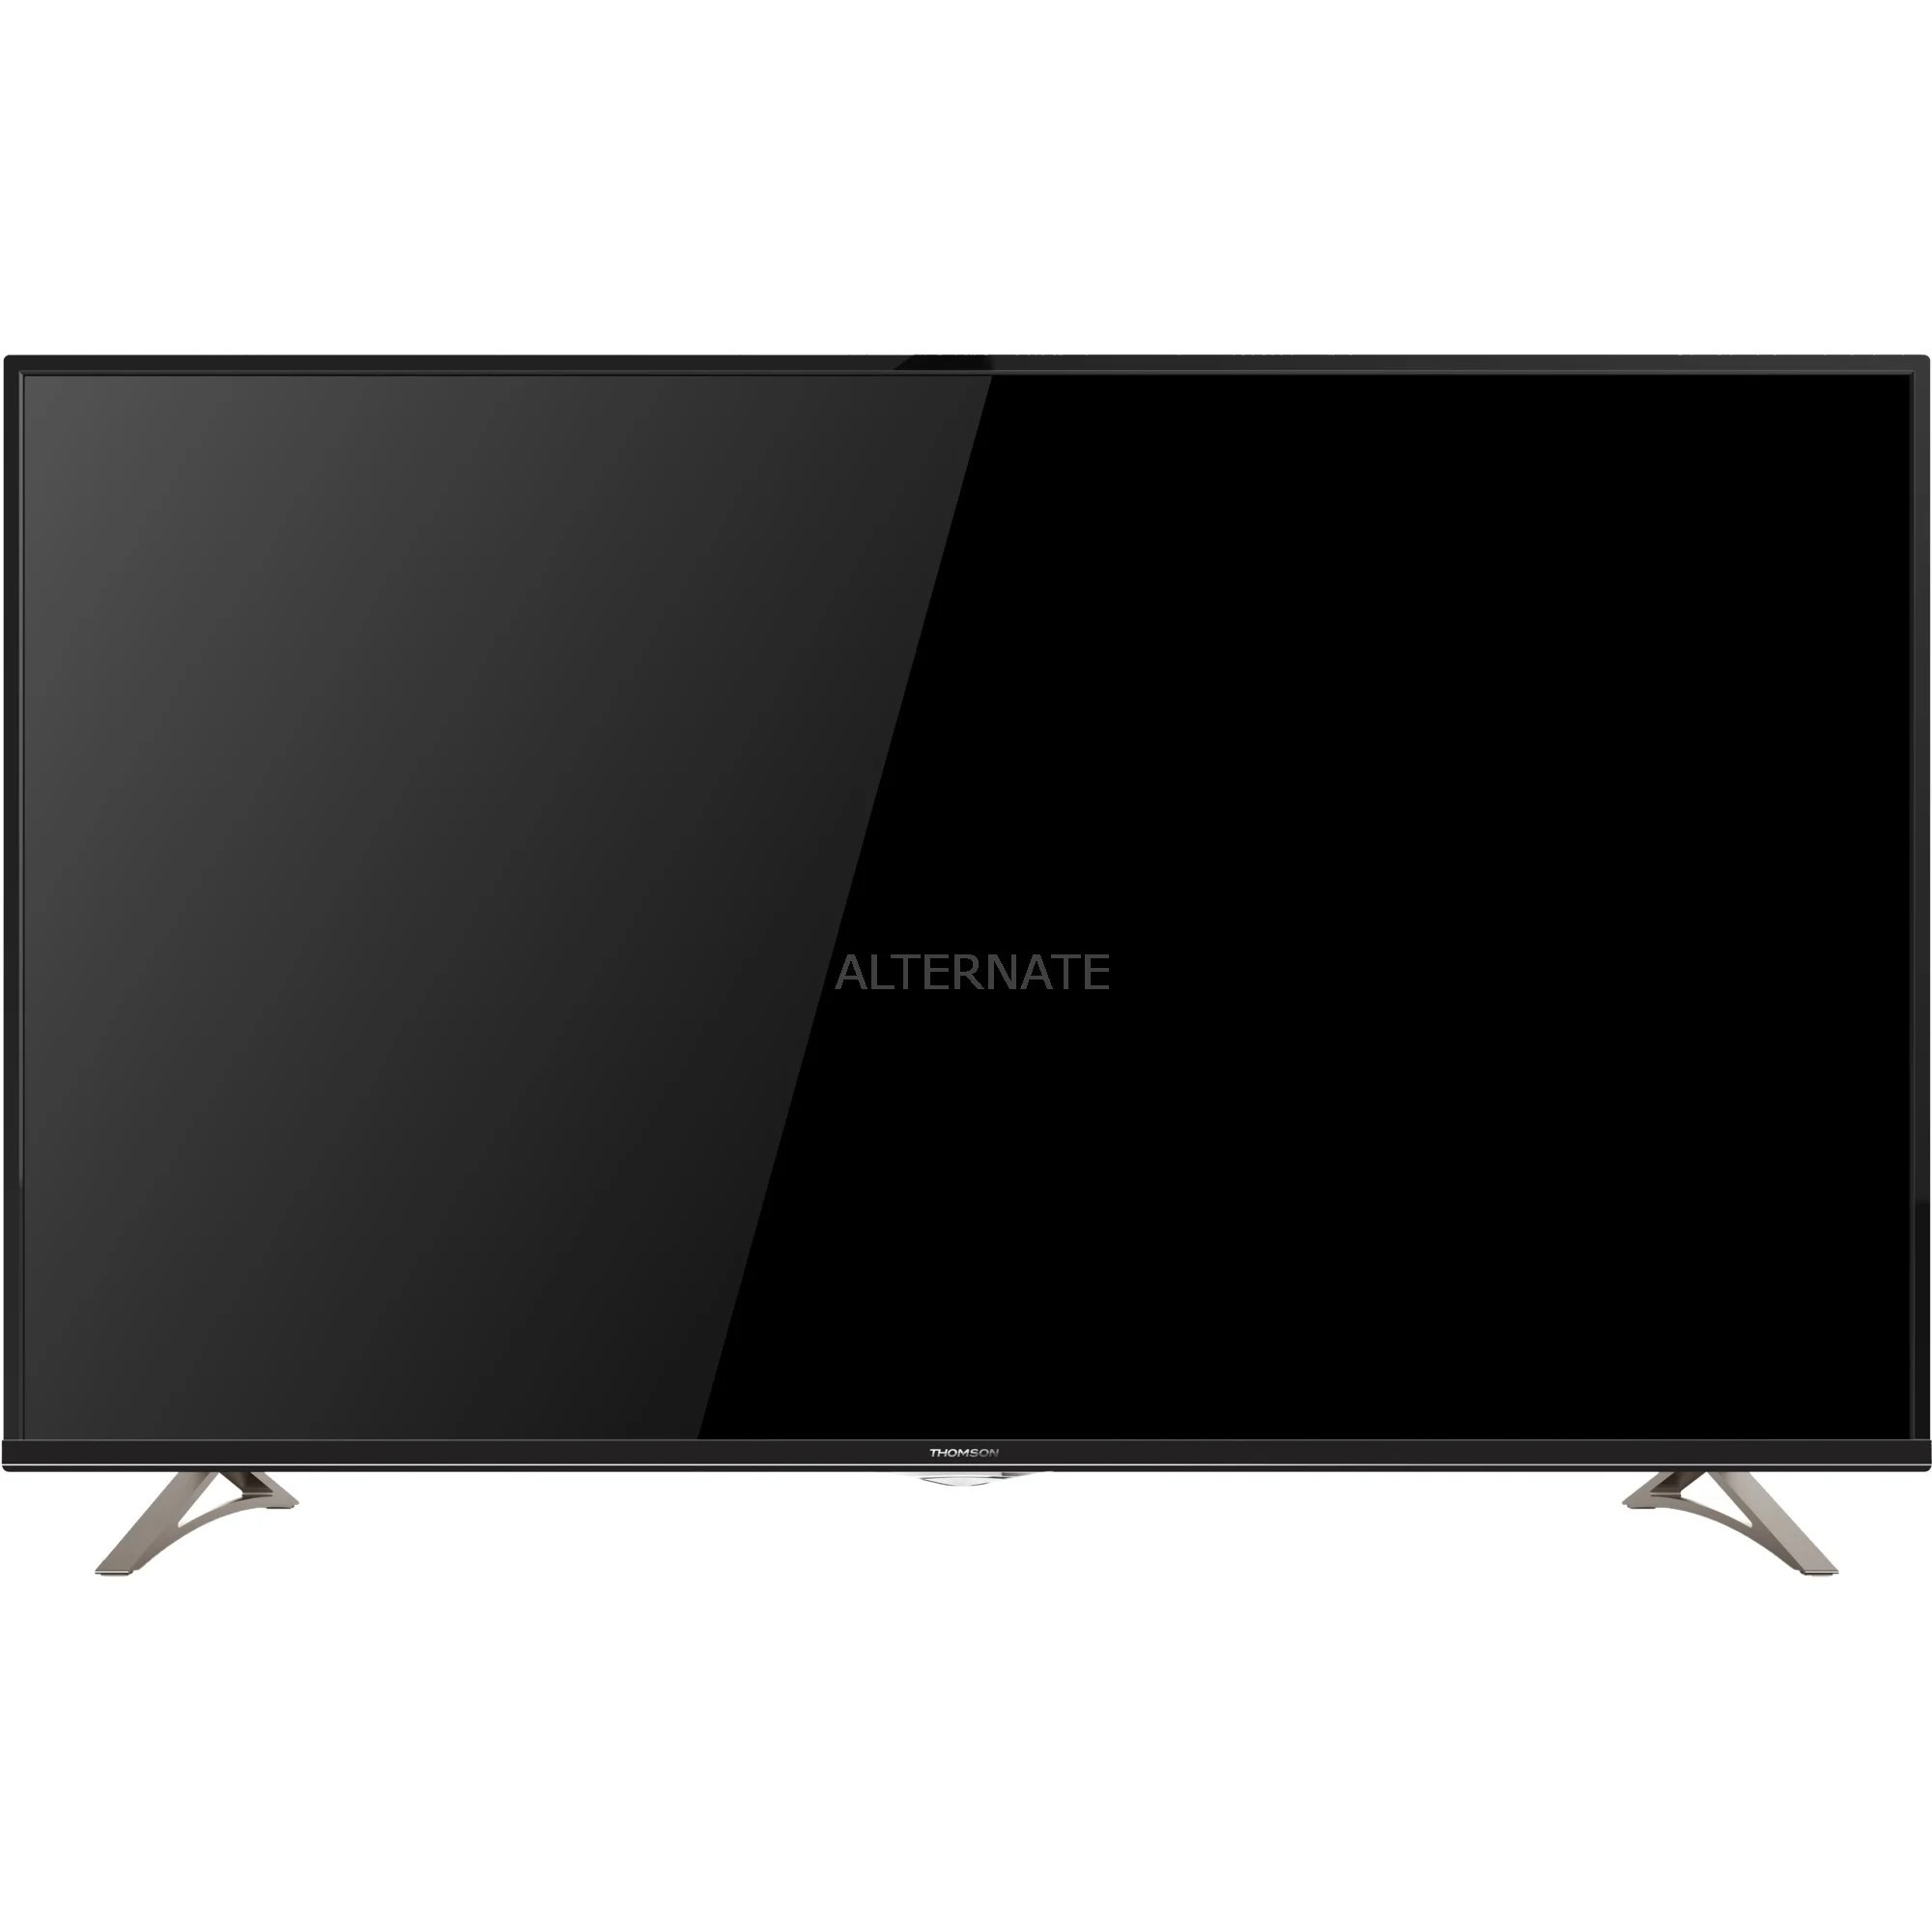 Offerte tv led 24 pollici full hd 100hz fujifilm s2950 prezzo